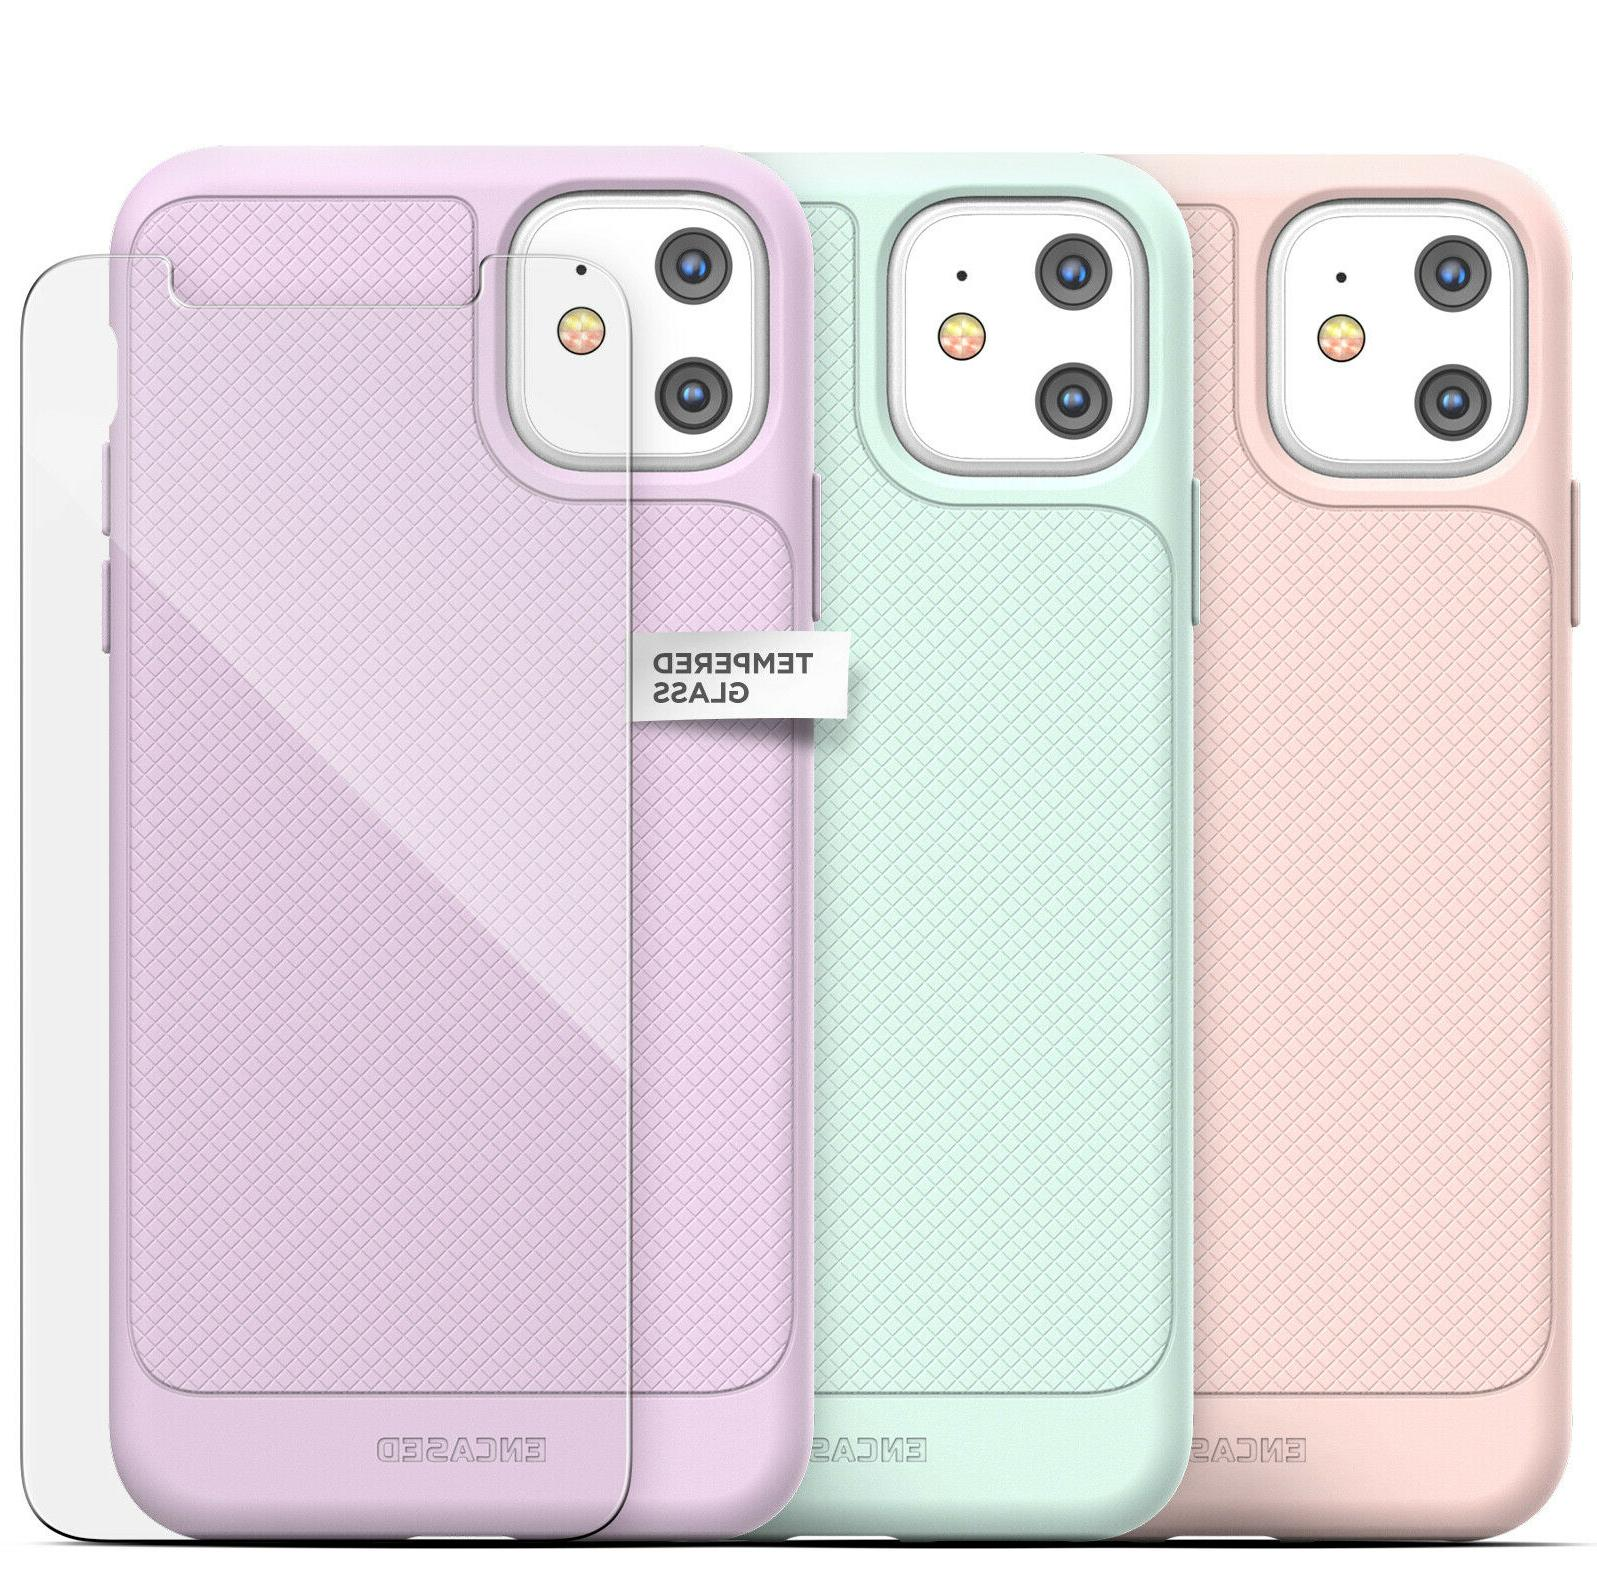 iPhone Lavender Thin Protector